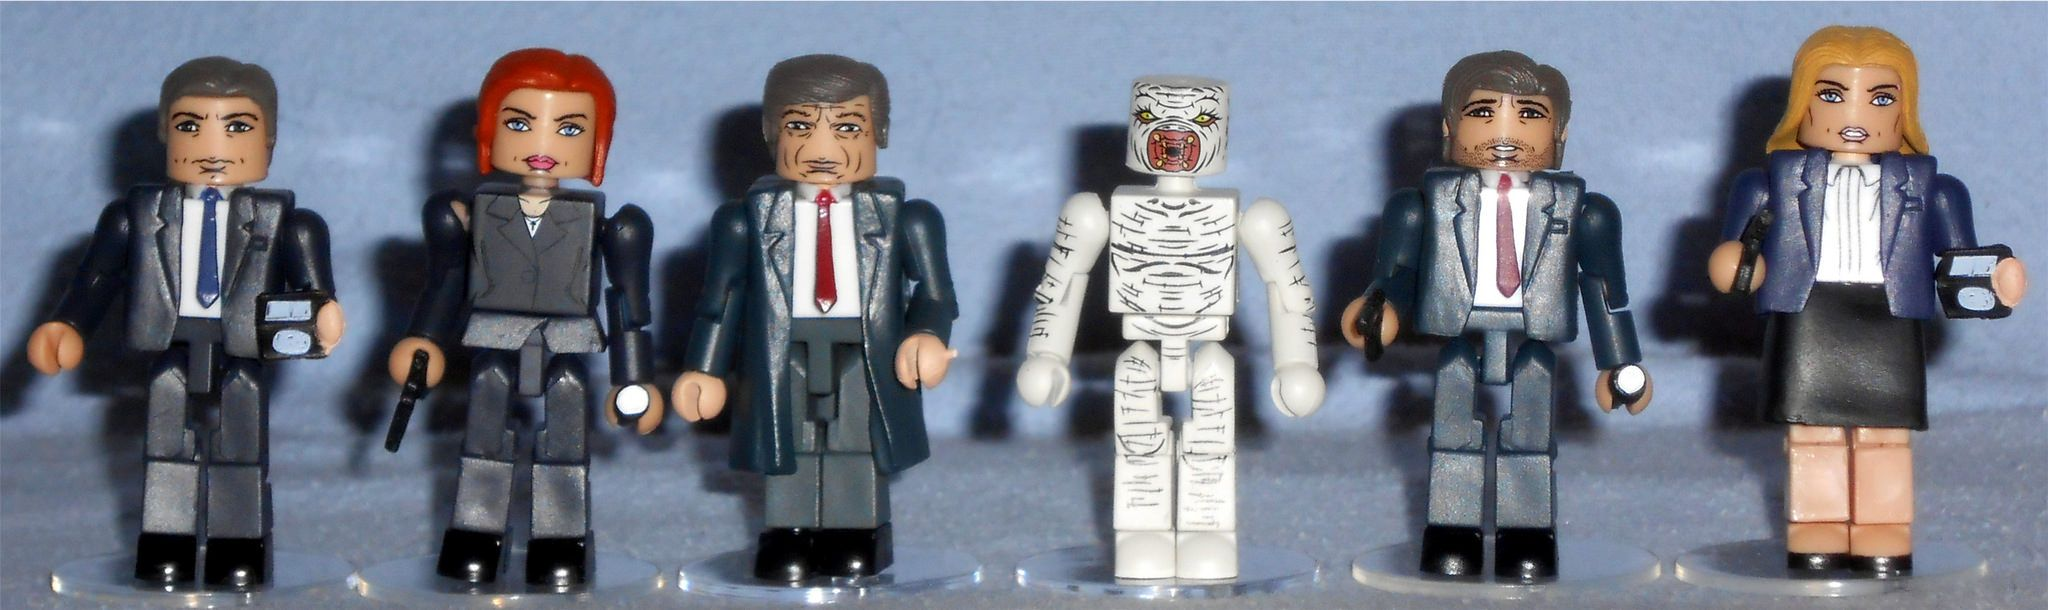 Classic X-Files Minimates Series 1 Cigarette Smoking Man